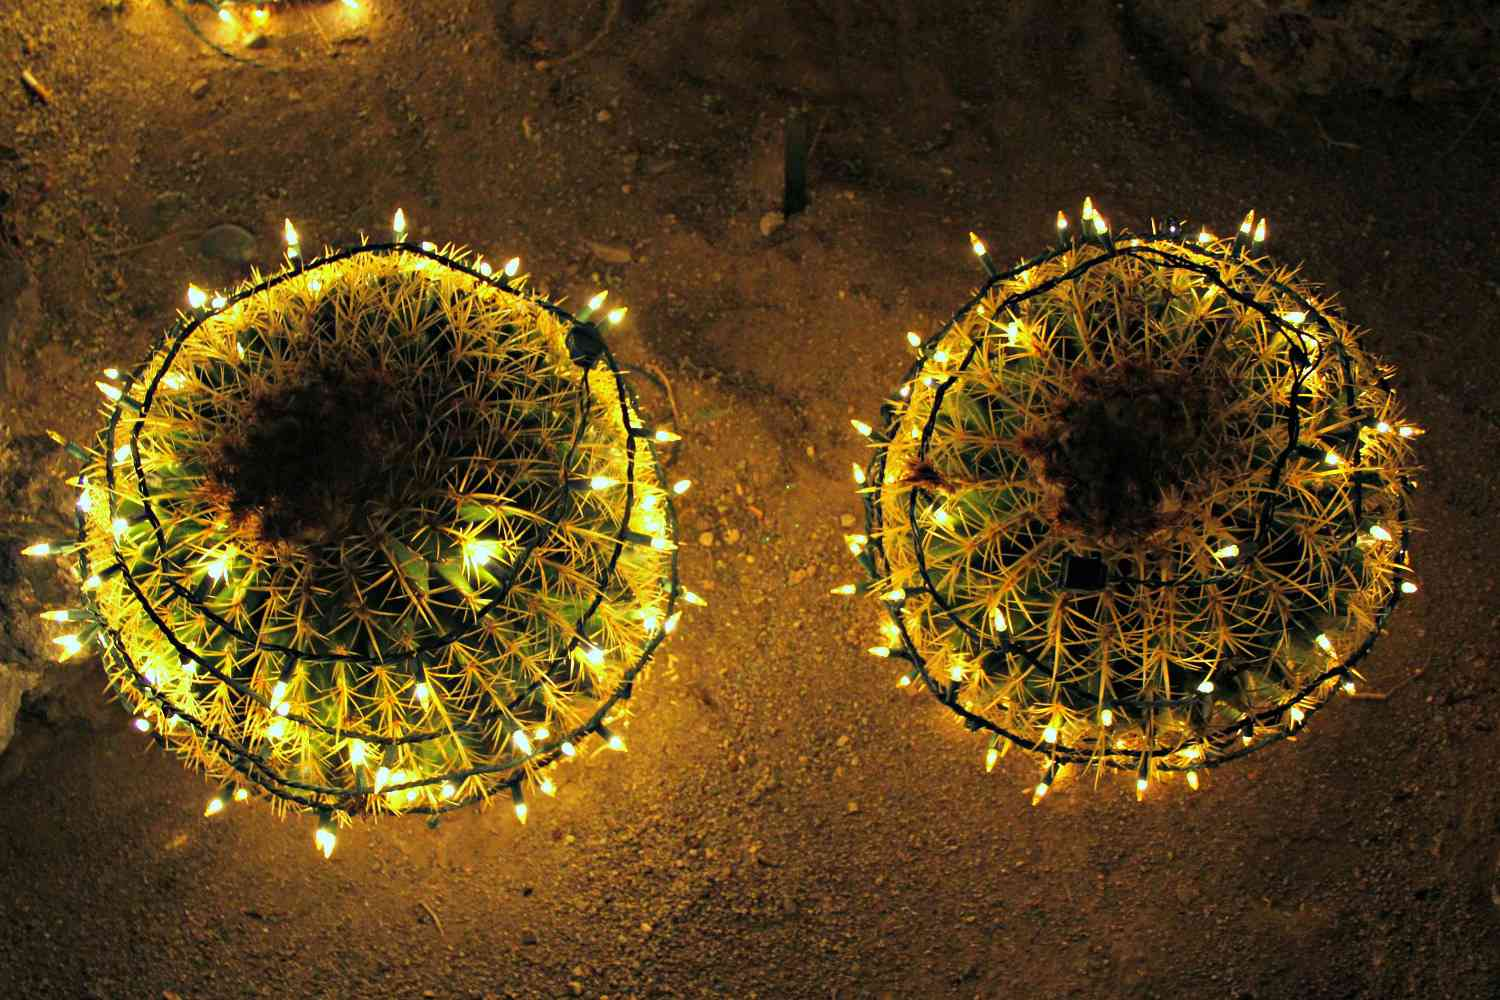 Golden barrel cacti are decorated with string lights.